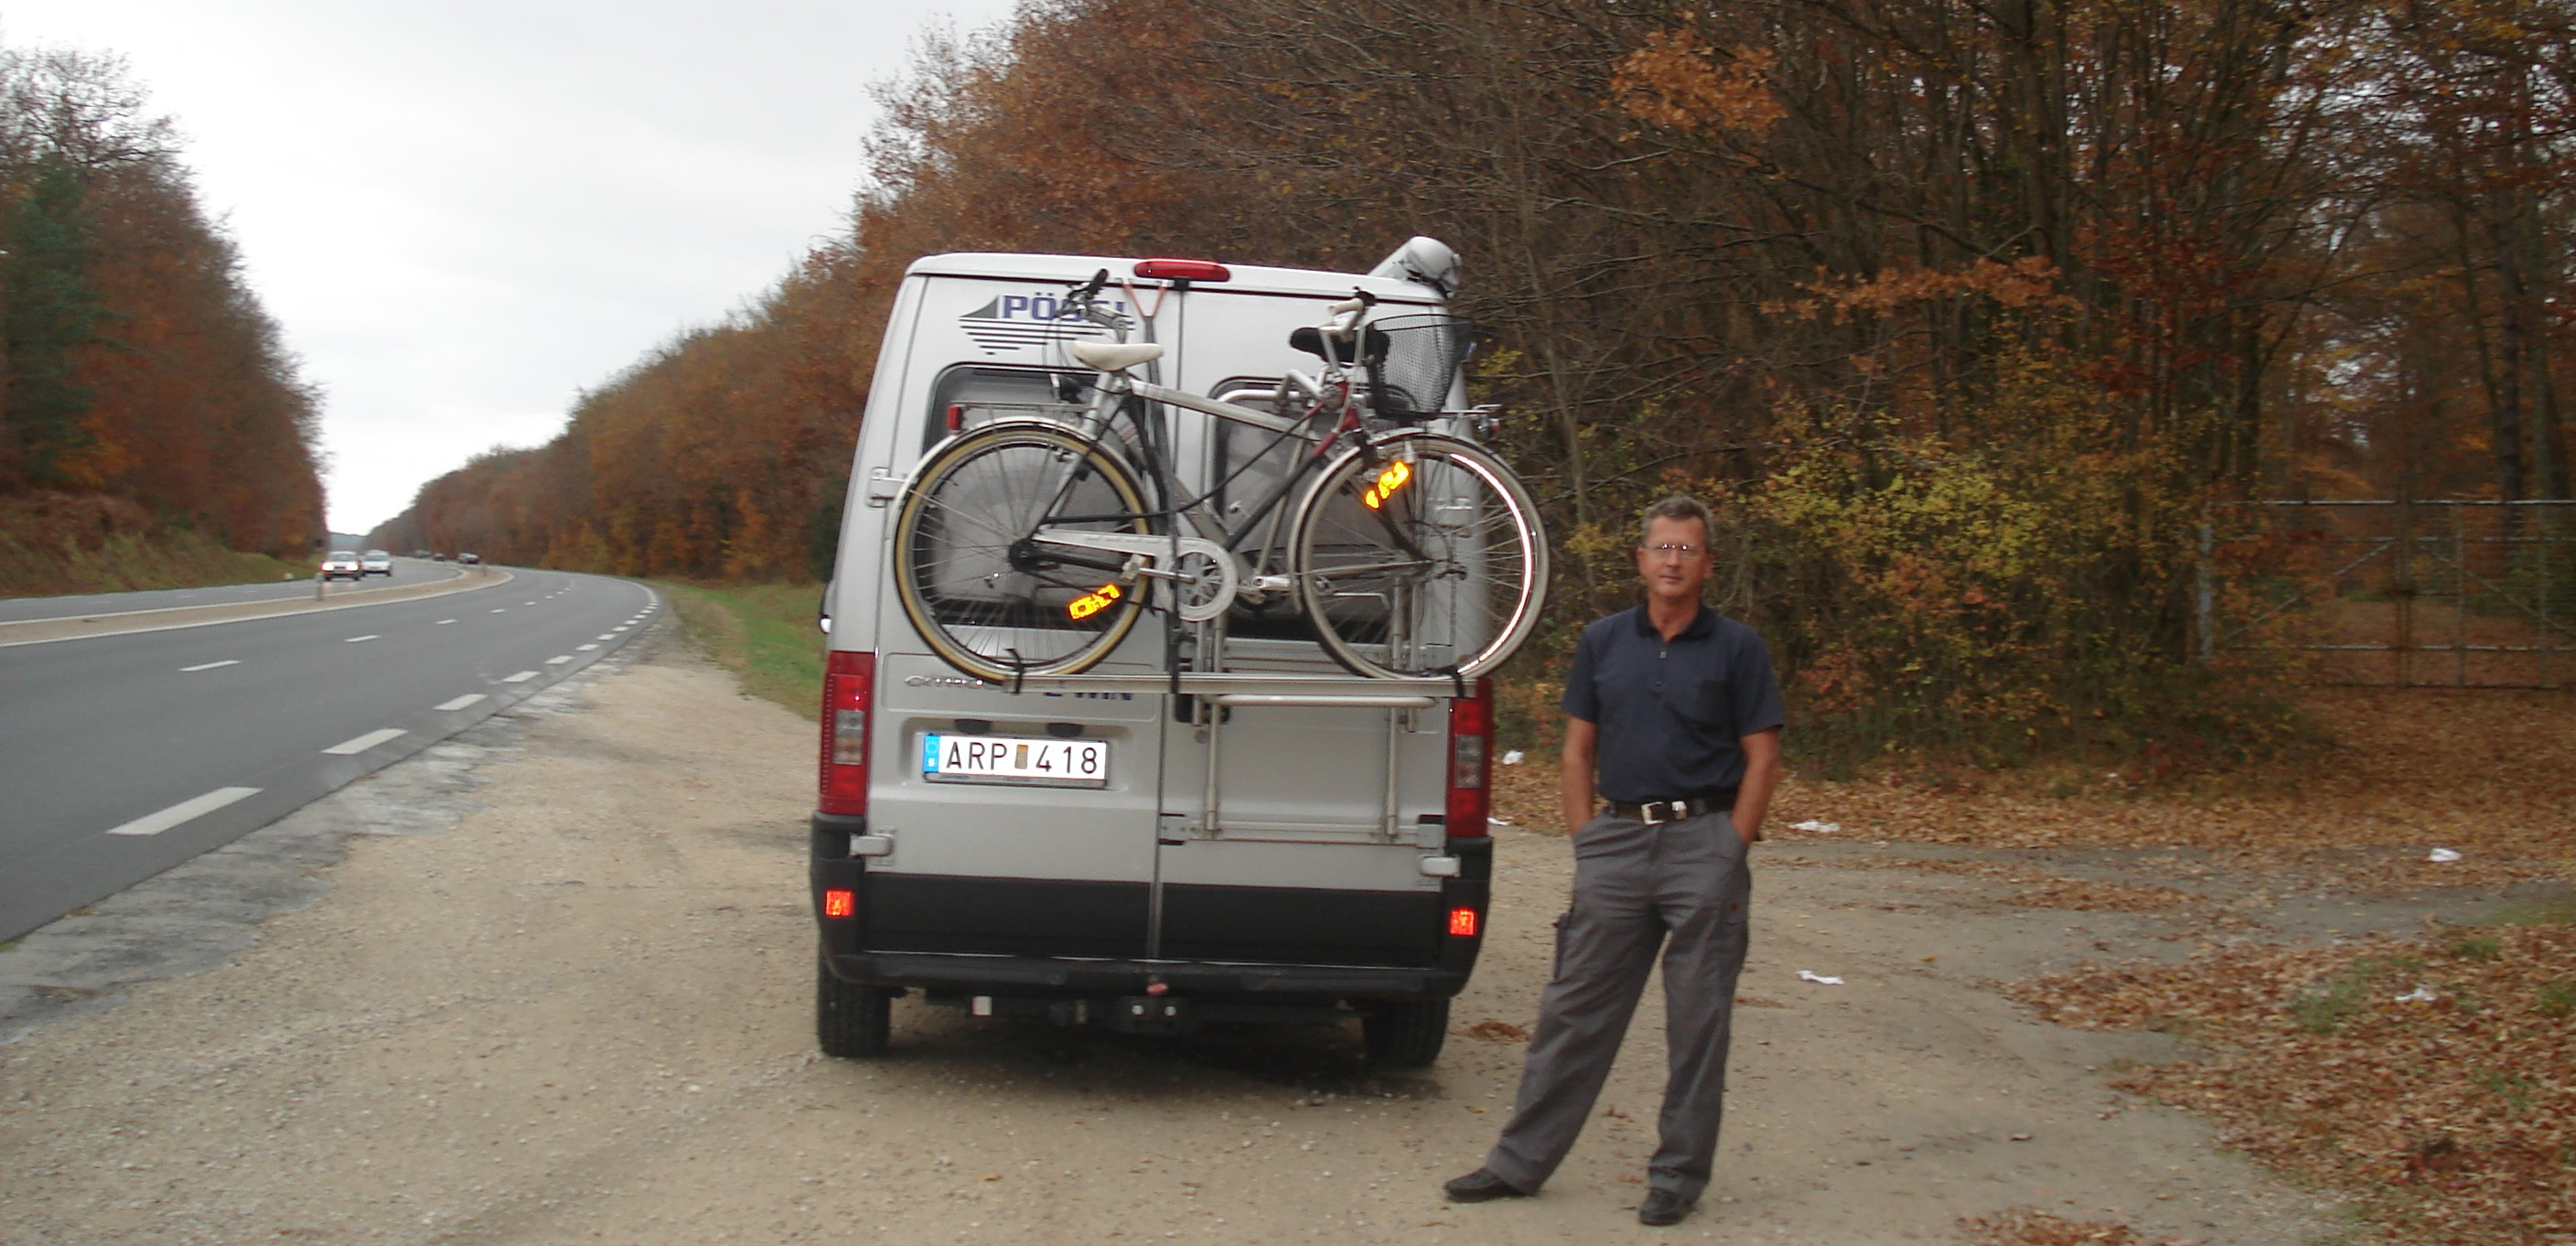 On road to France